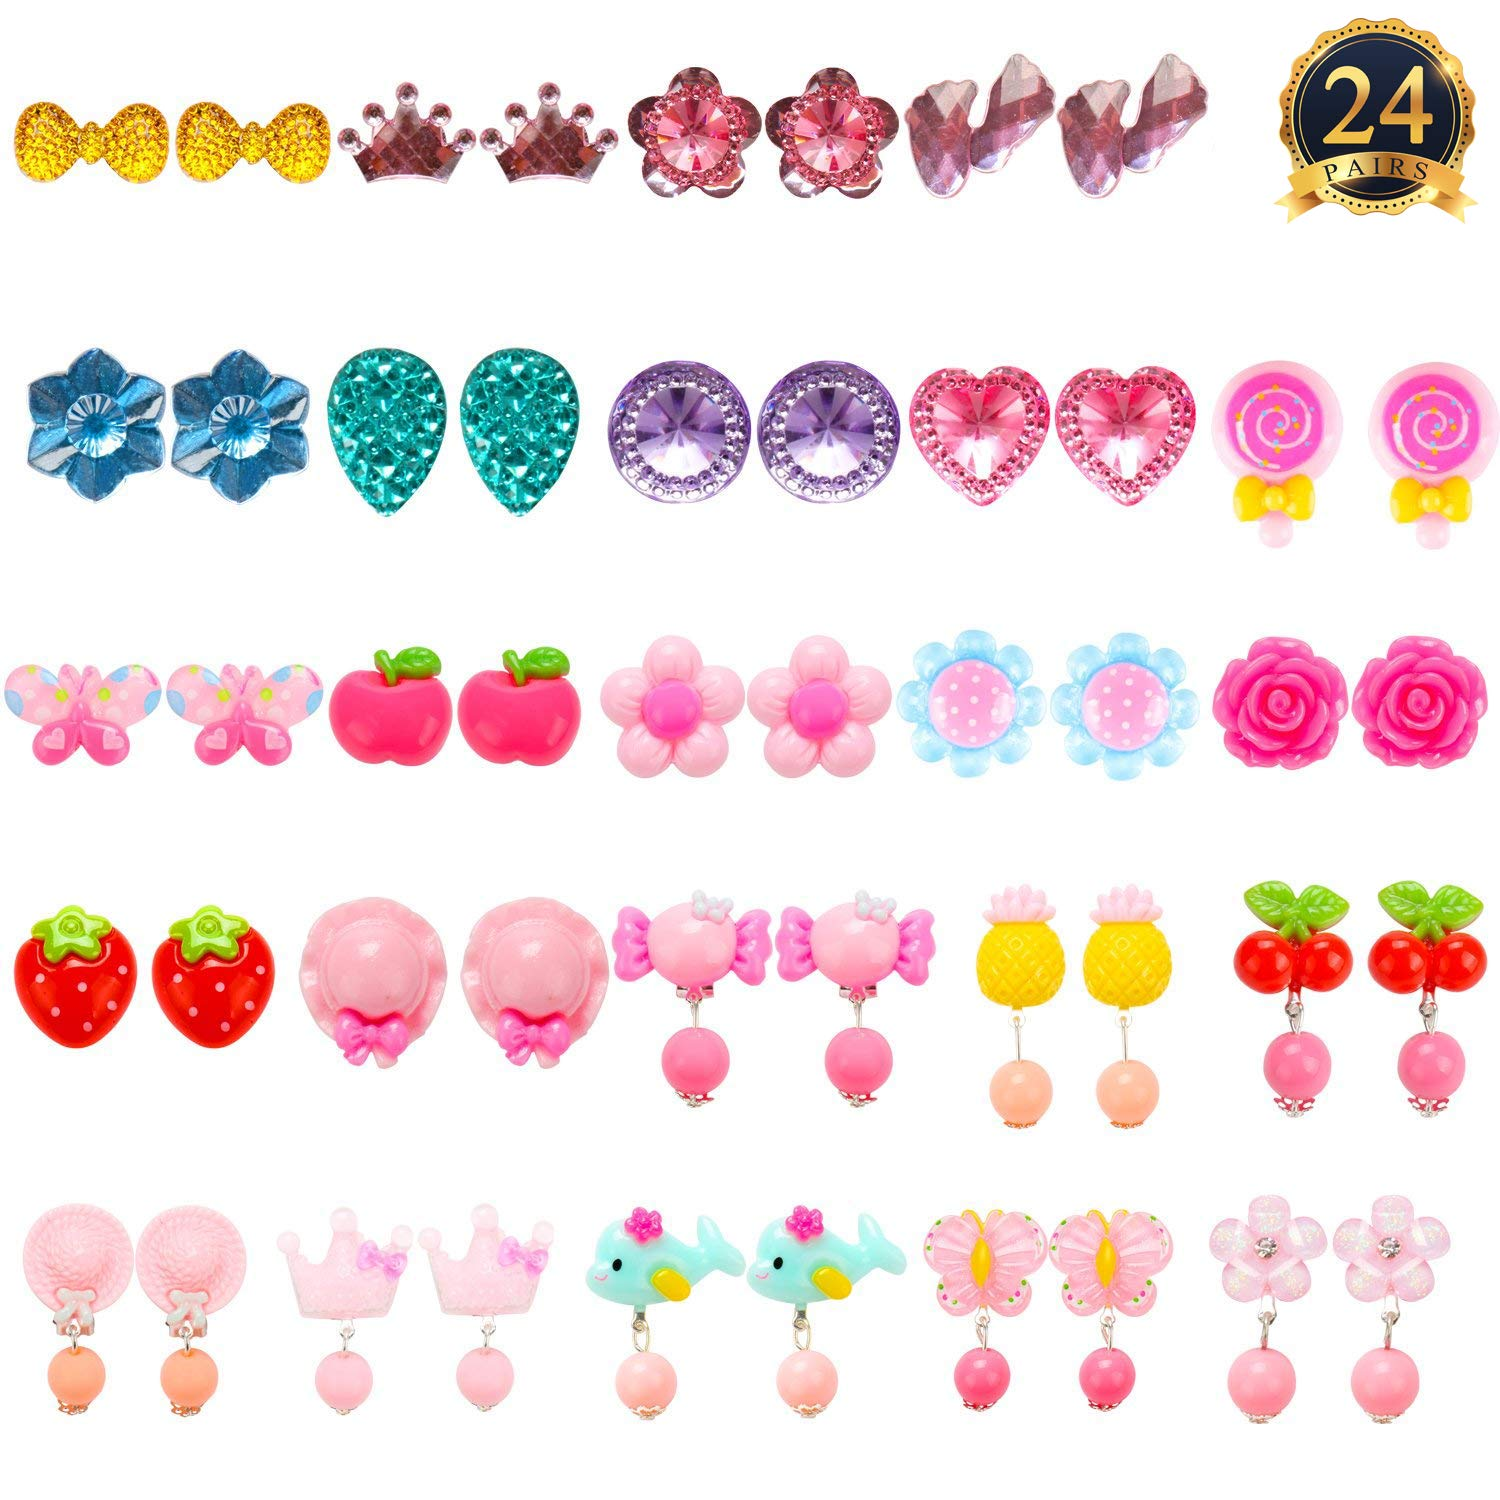 HaiMay 24 Pairs Clip-on Earrings Girls Play Earrings Party Favor, All Packed in 3 Clear Boxes